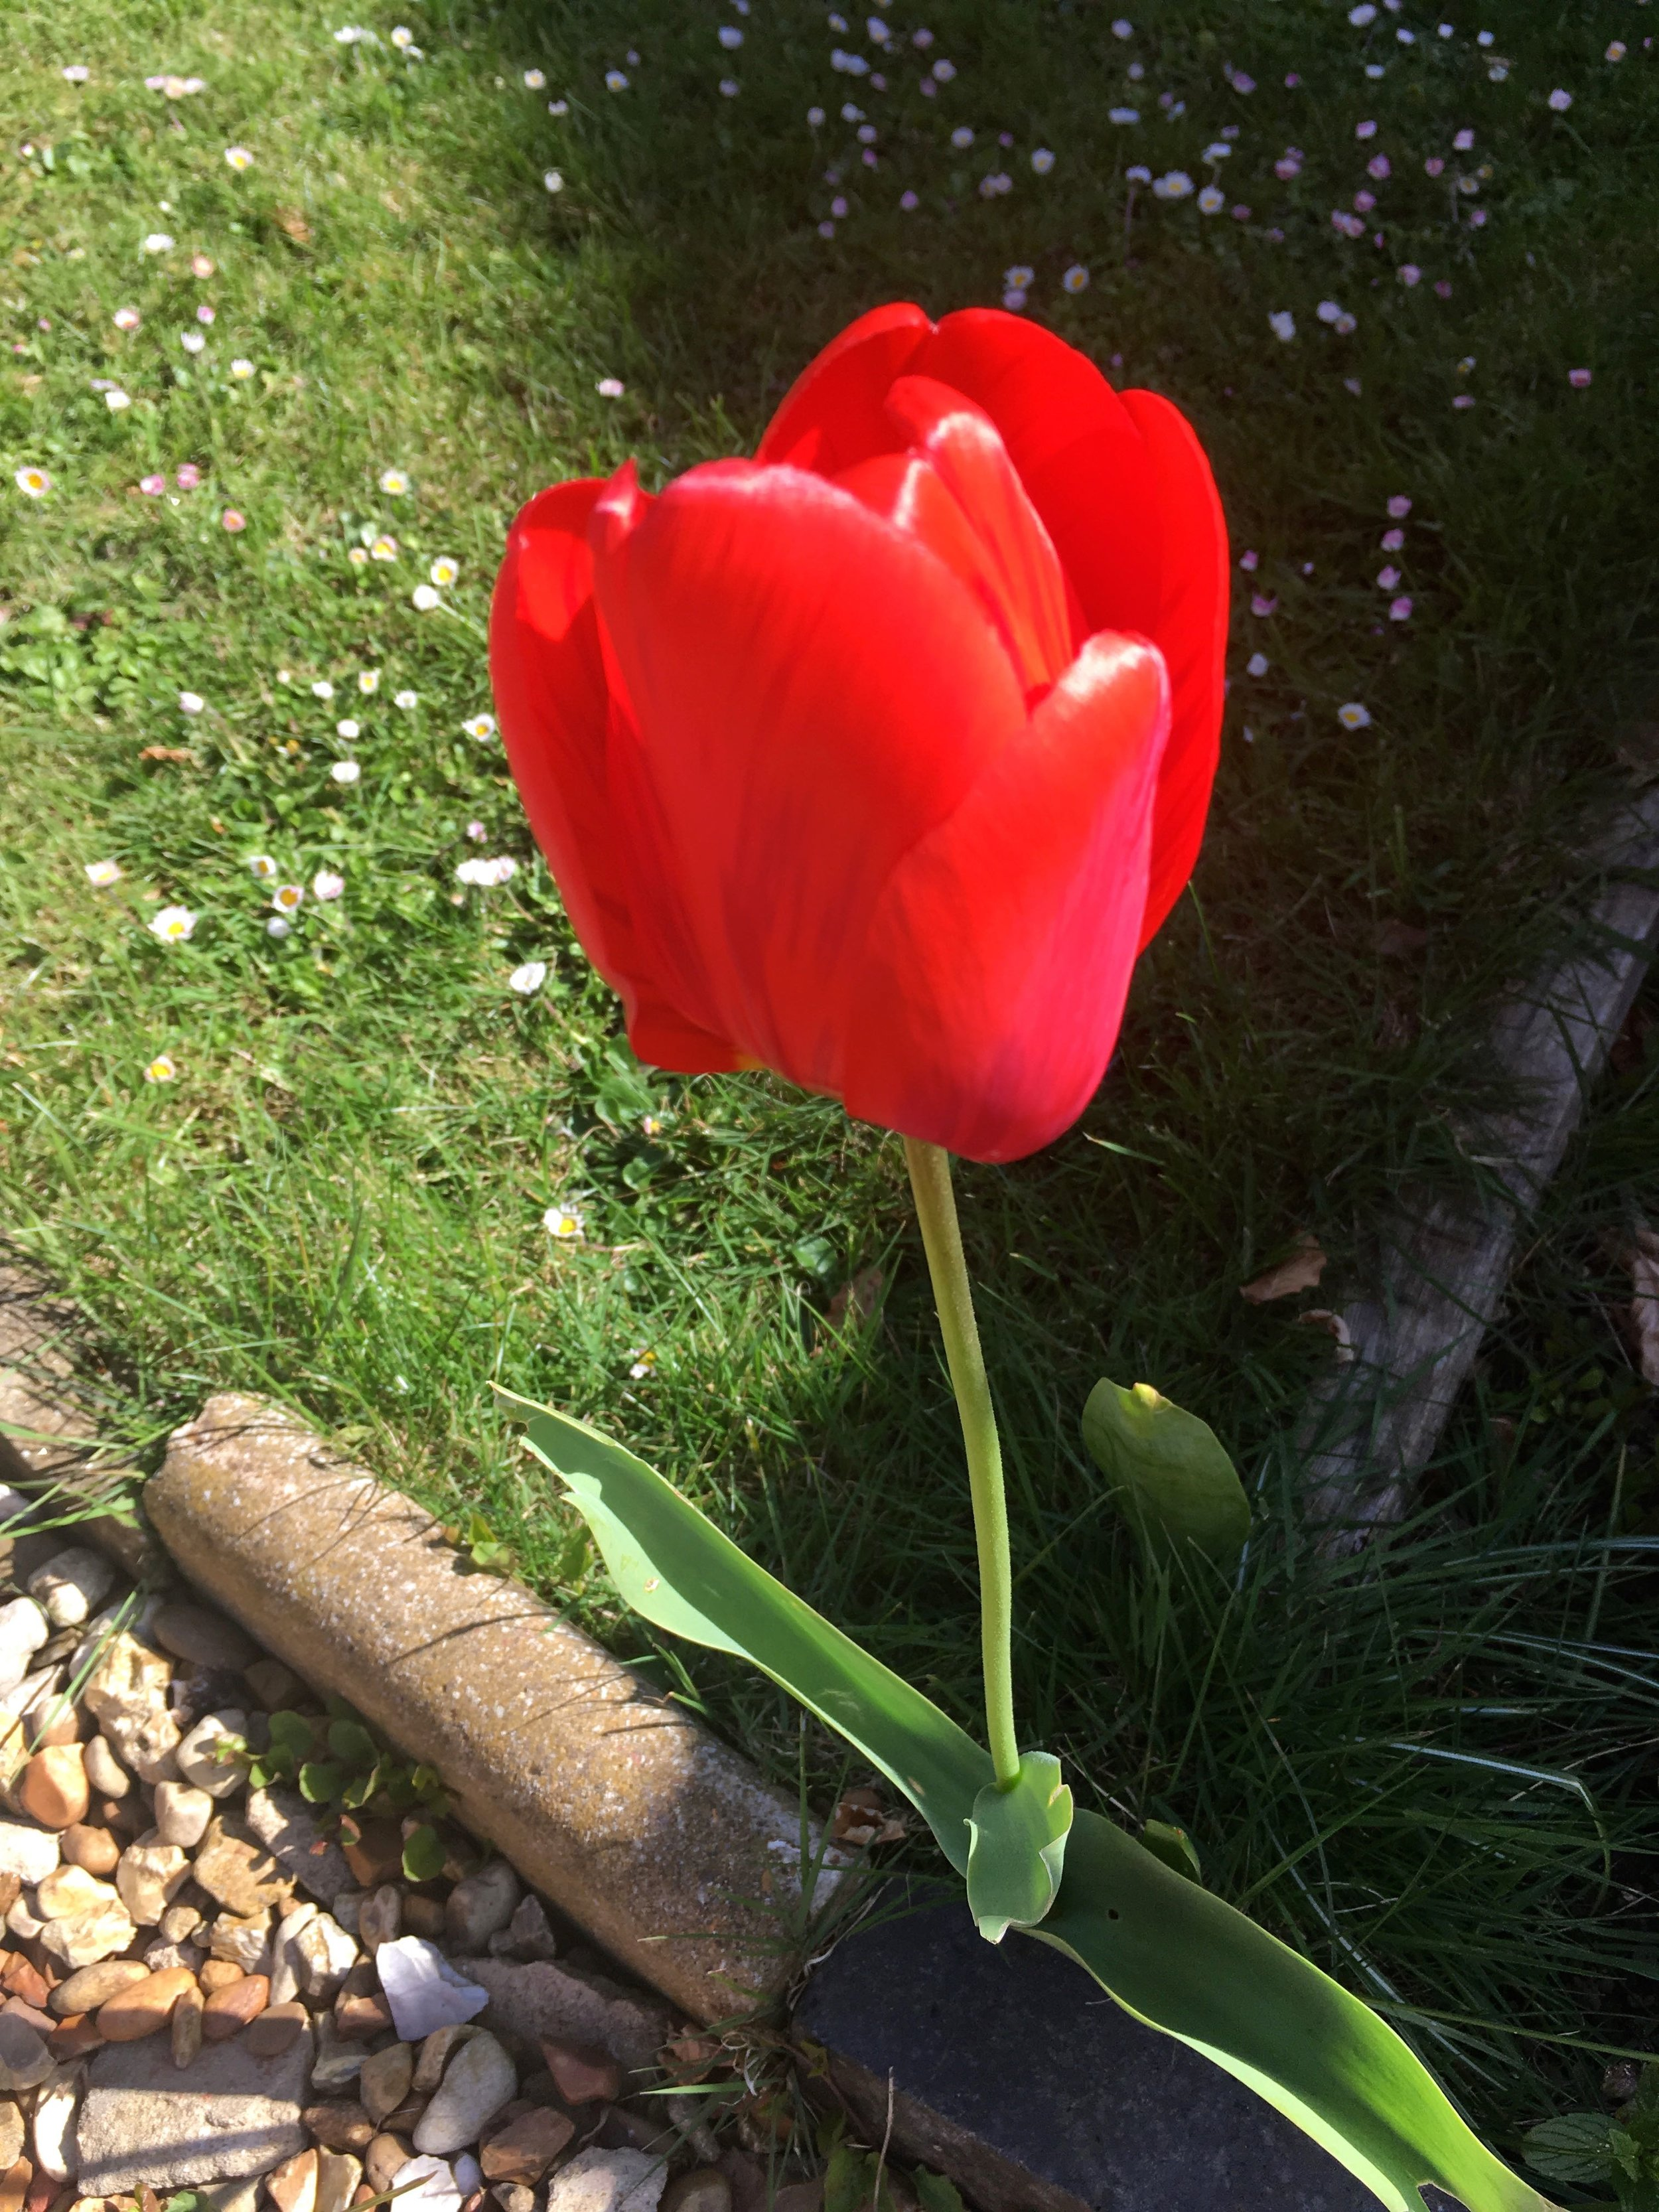 Shade or sun, this tulip can't quite decide